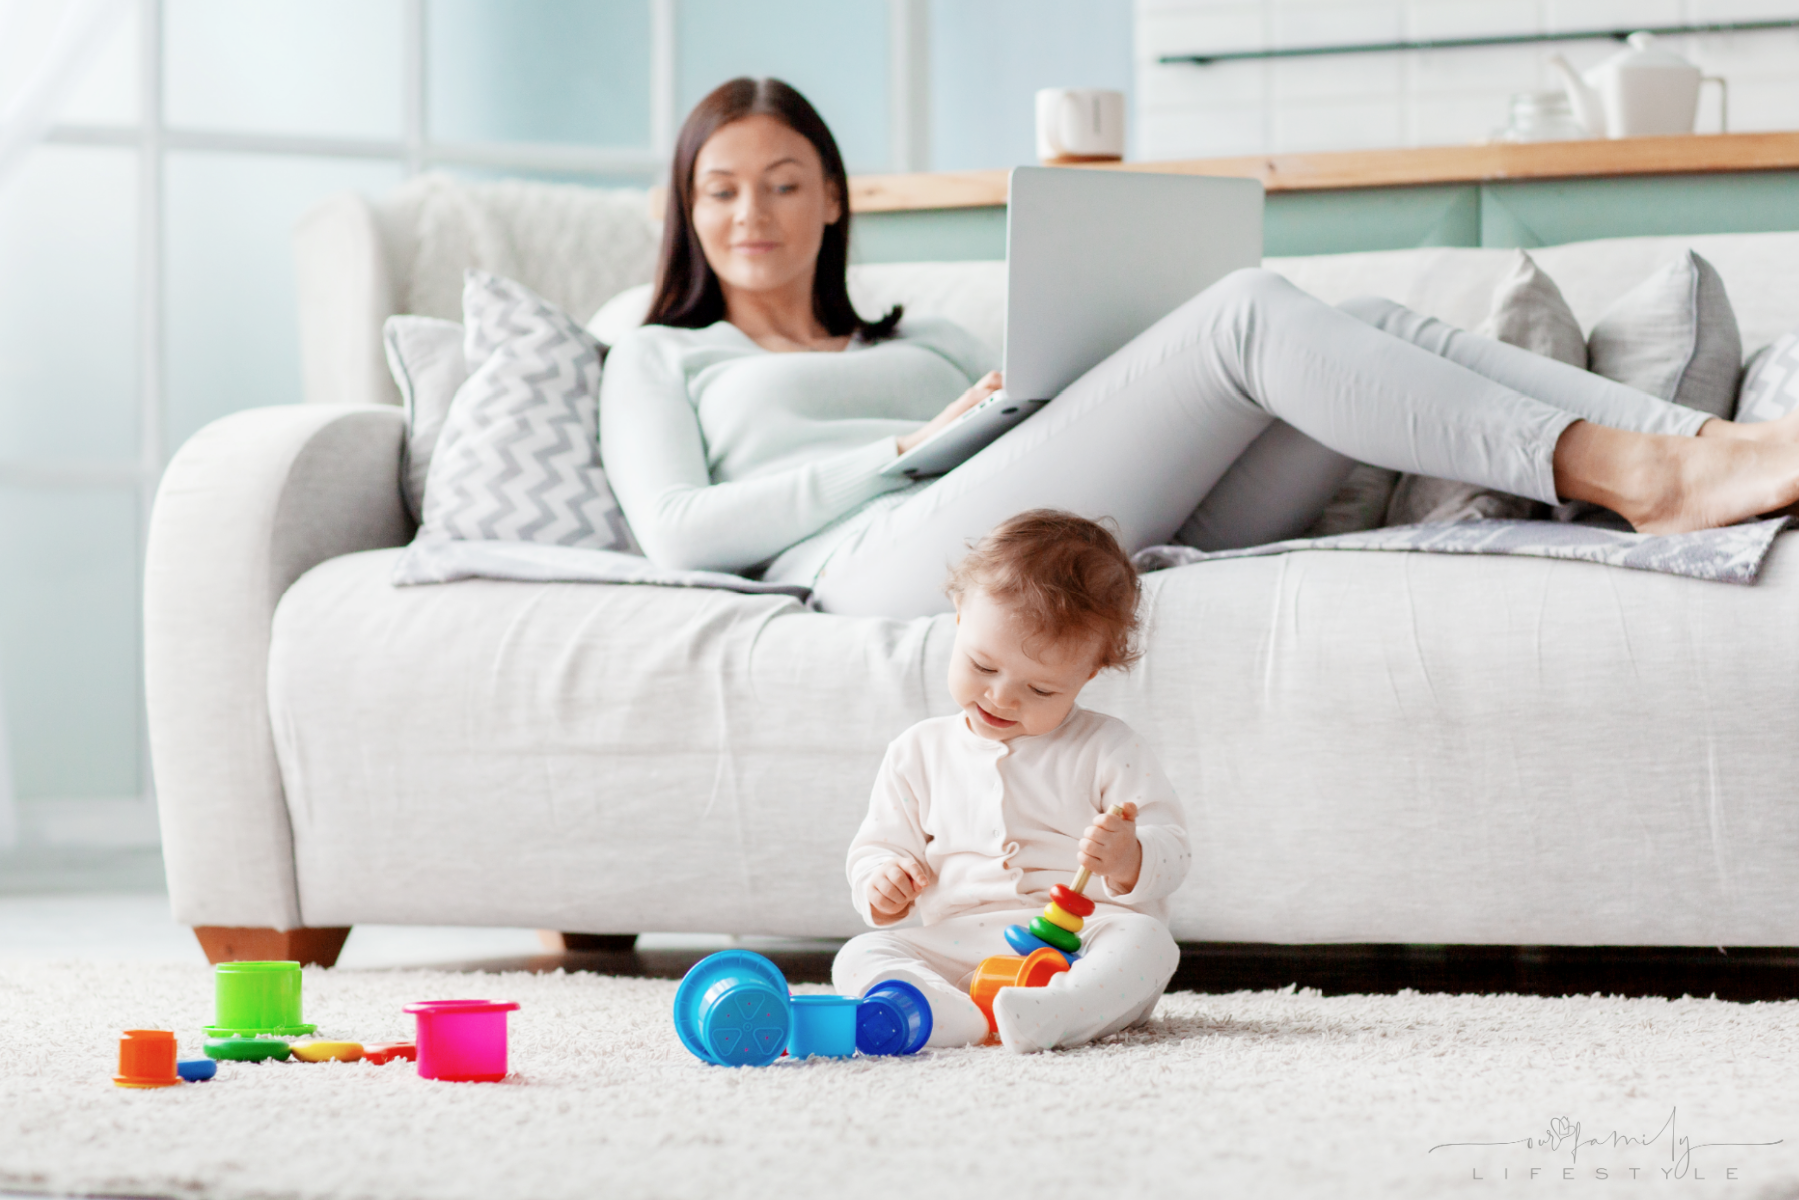 mom-works-laptop-home-while-her-child-plays-with-toys-floor